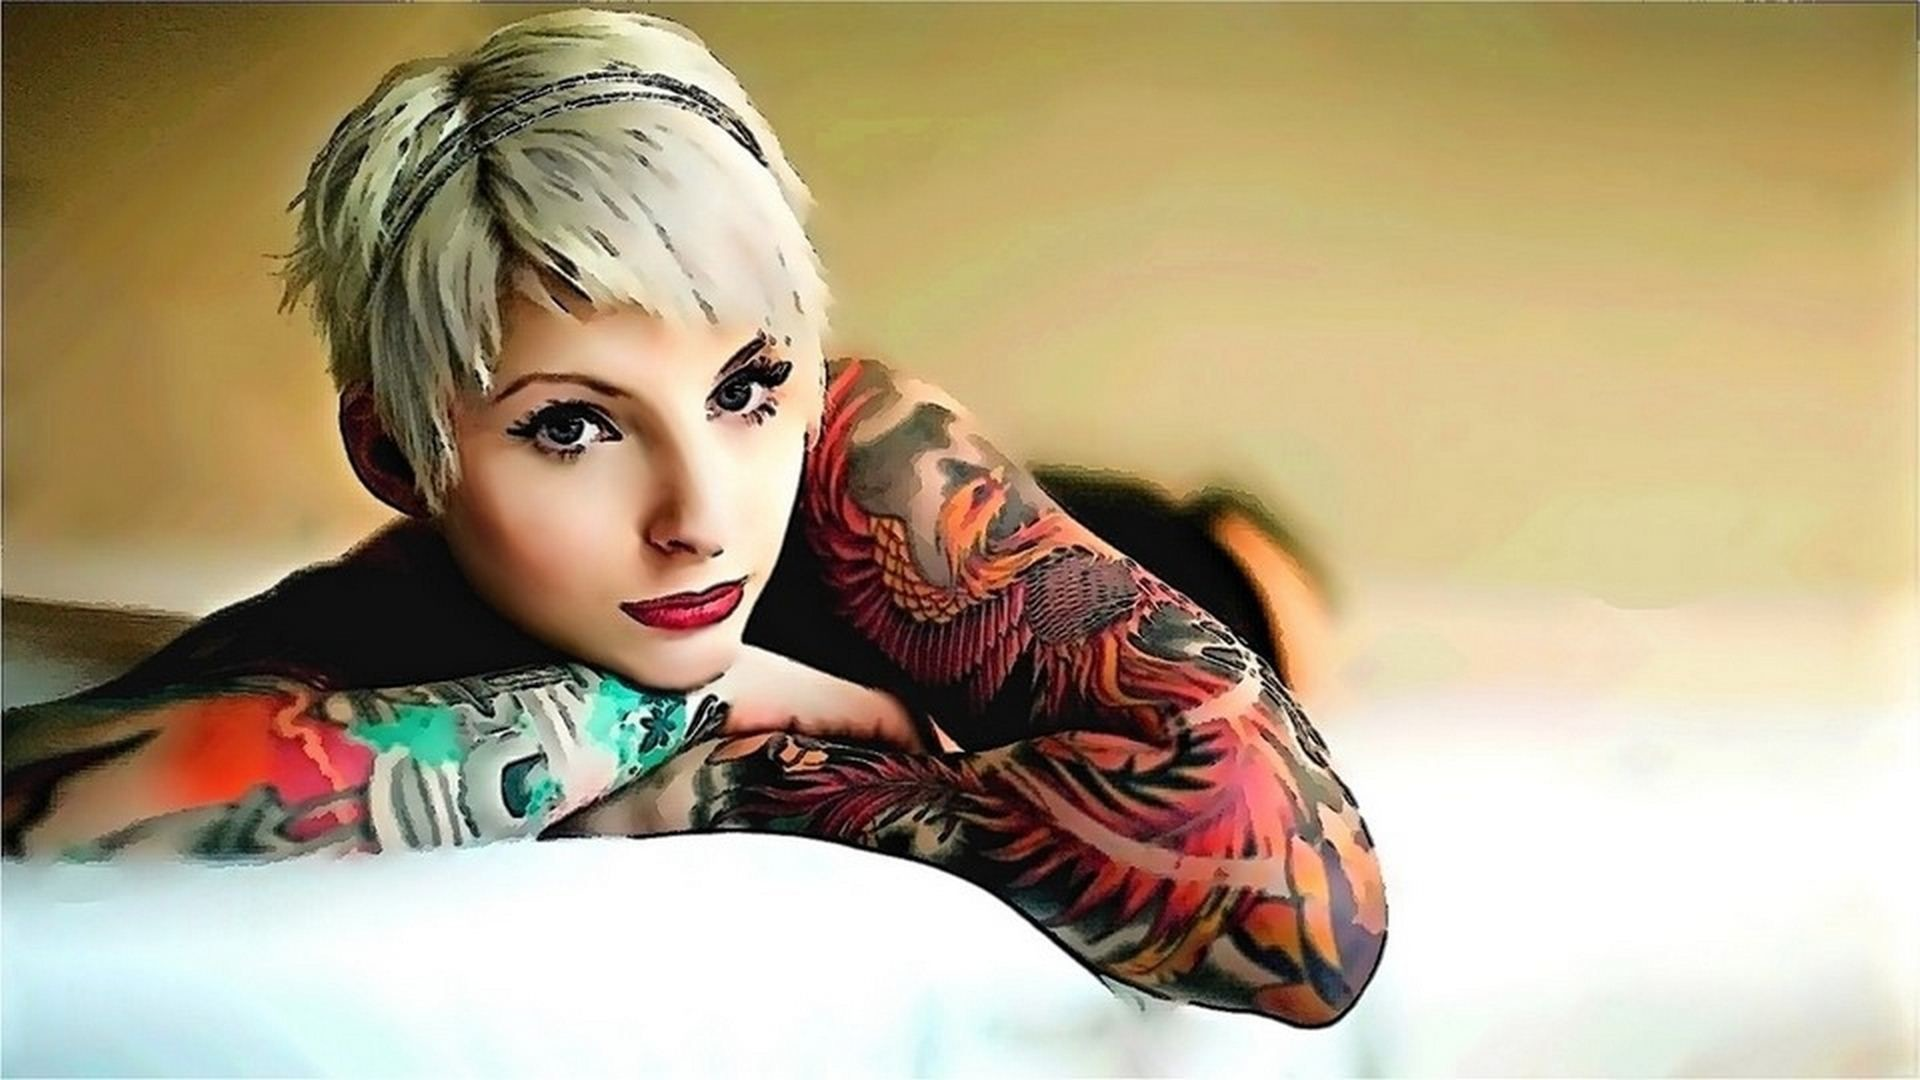 Res: 1920x1080, Custom HDQ Tattoo Girl 1280x800 Wallpapers and Pictures (228142274,  )